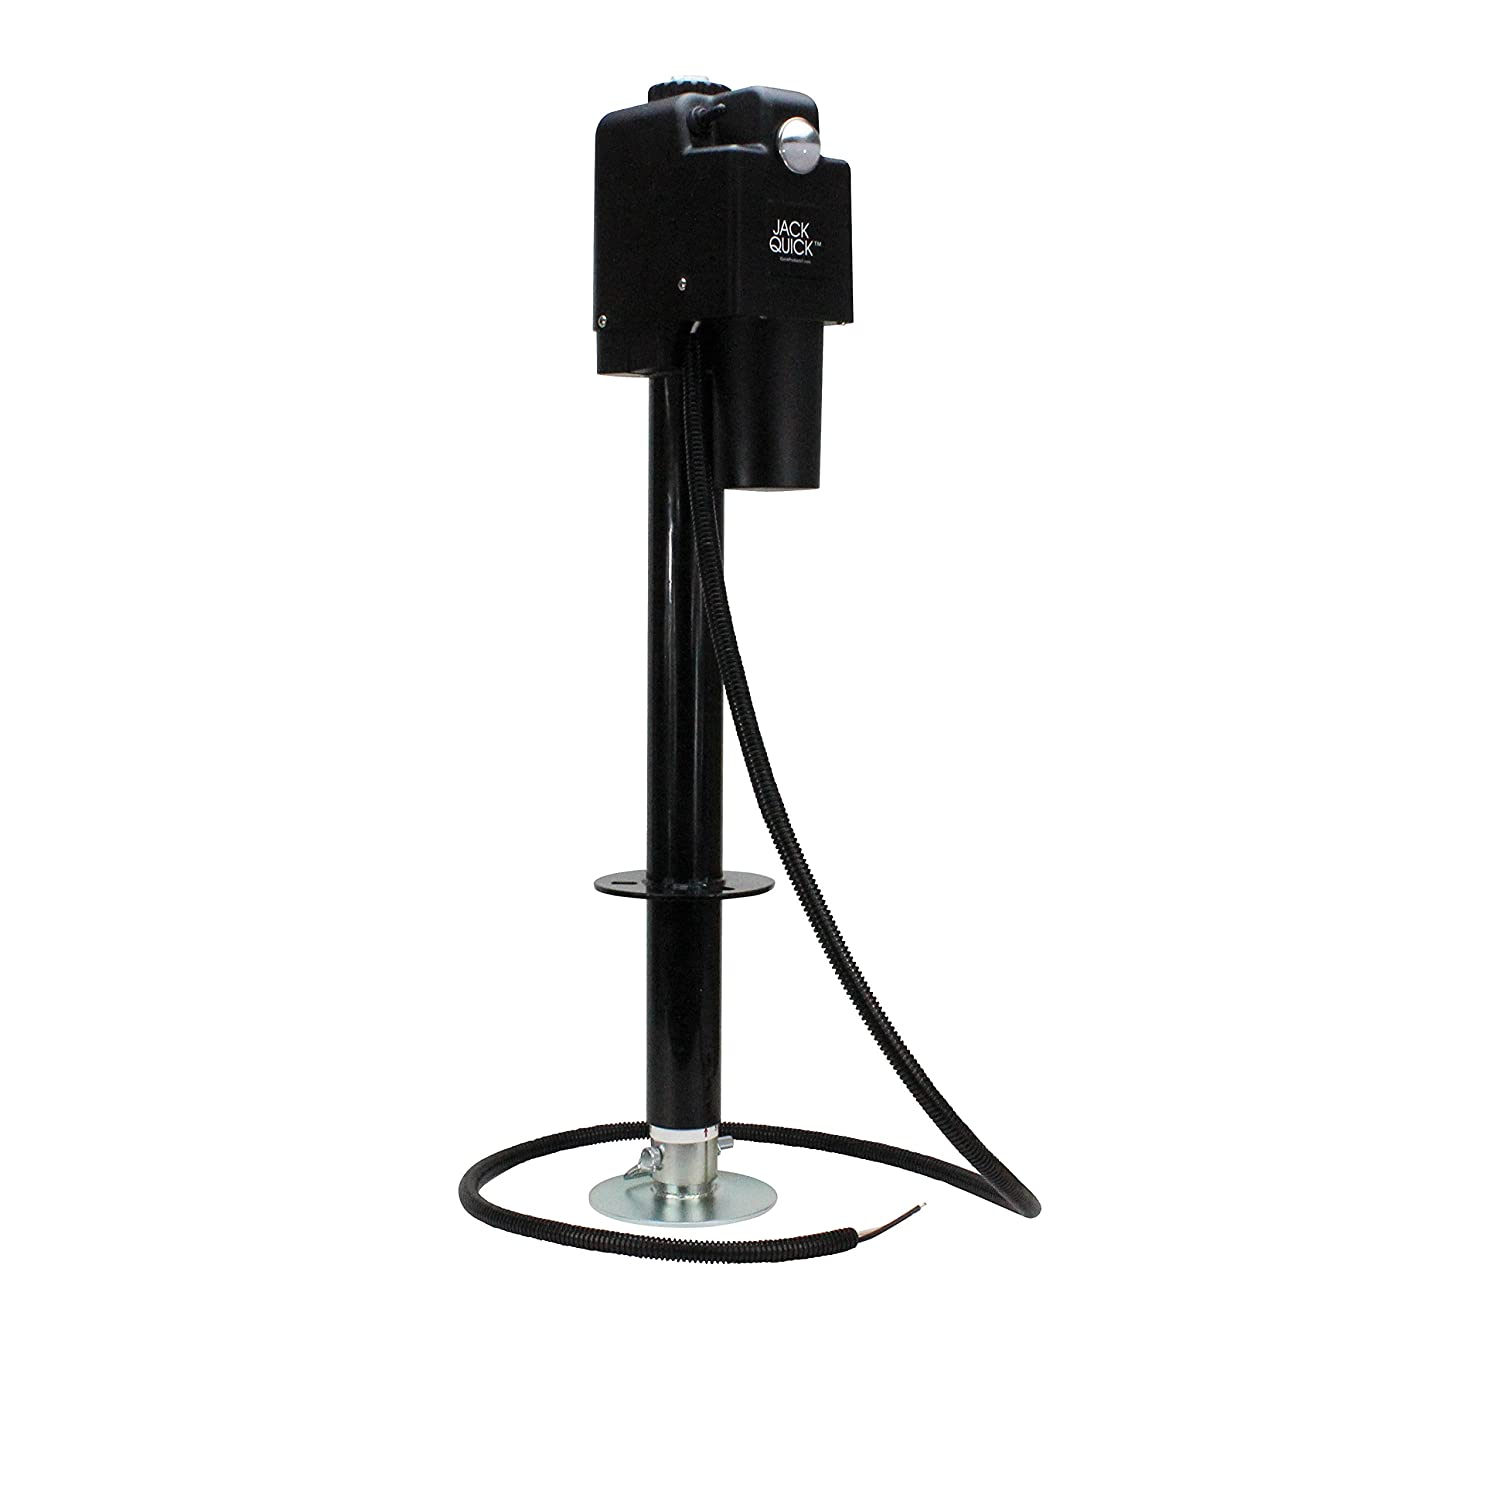 Amazon.com: Jack Quick 3500 JQ-3500B 12V Electric Tongue Jack with single  Lights, 3650 lb. Capacity / Black: Automotive